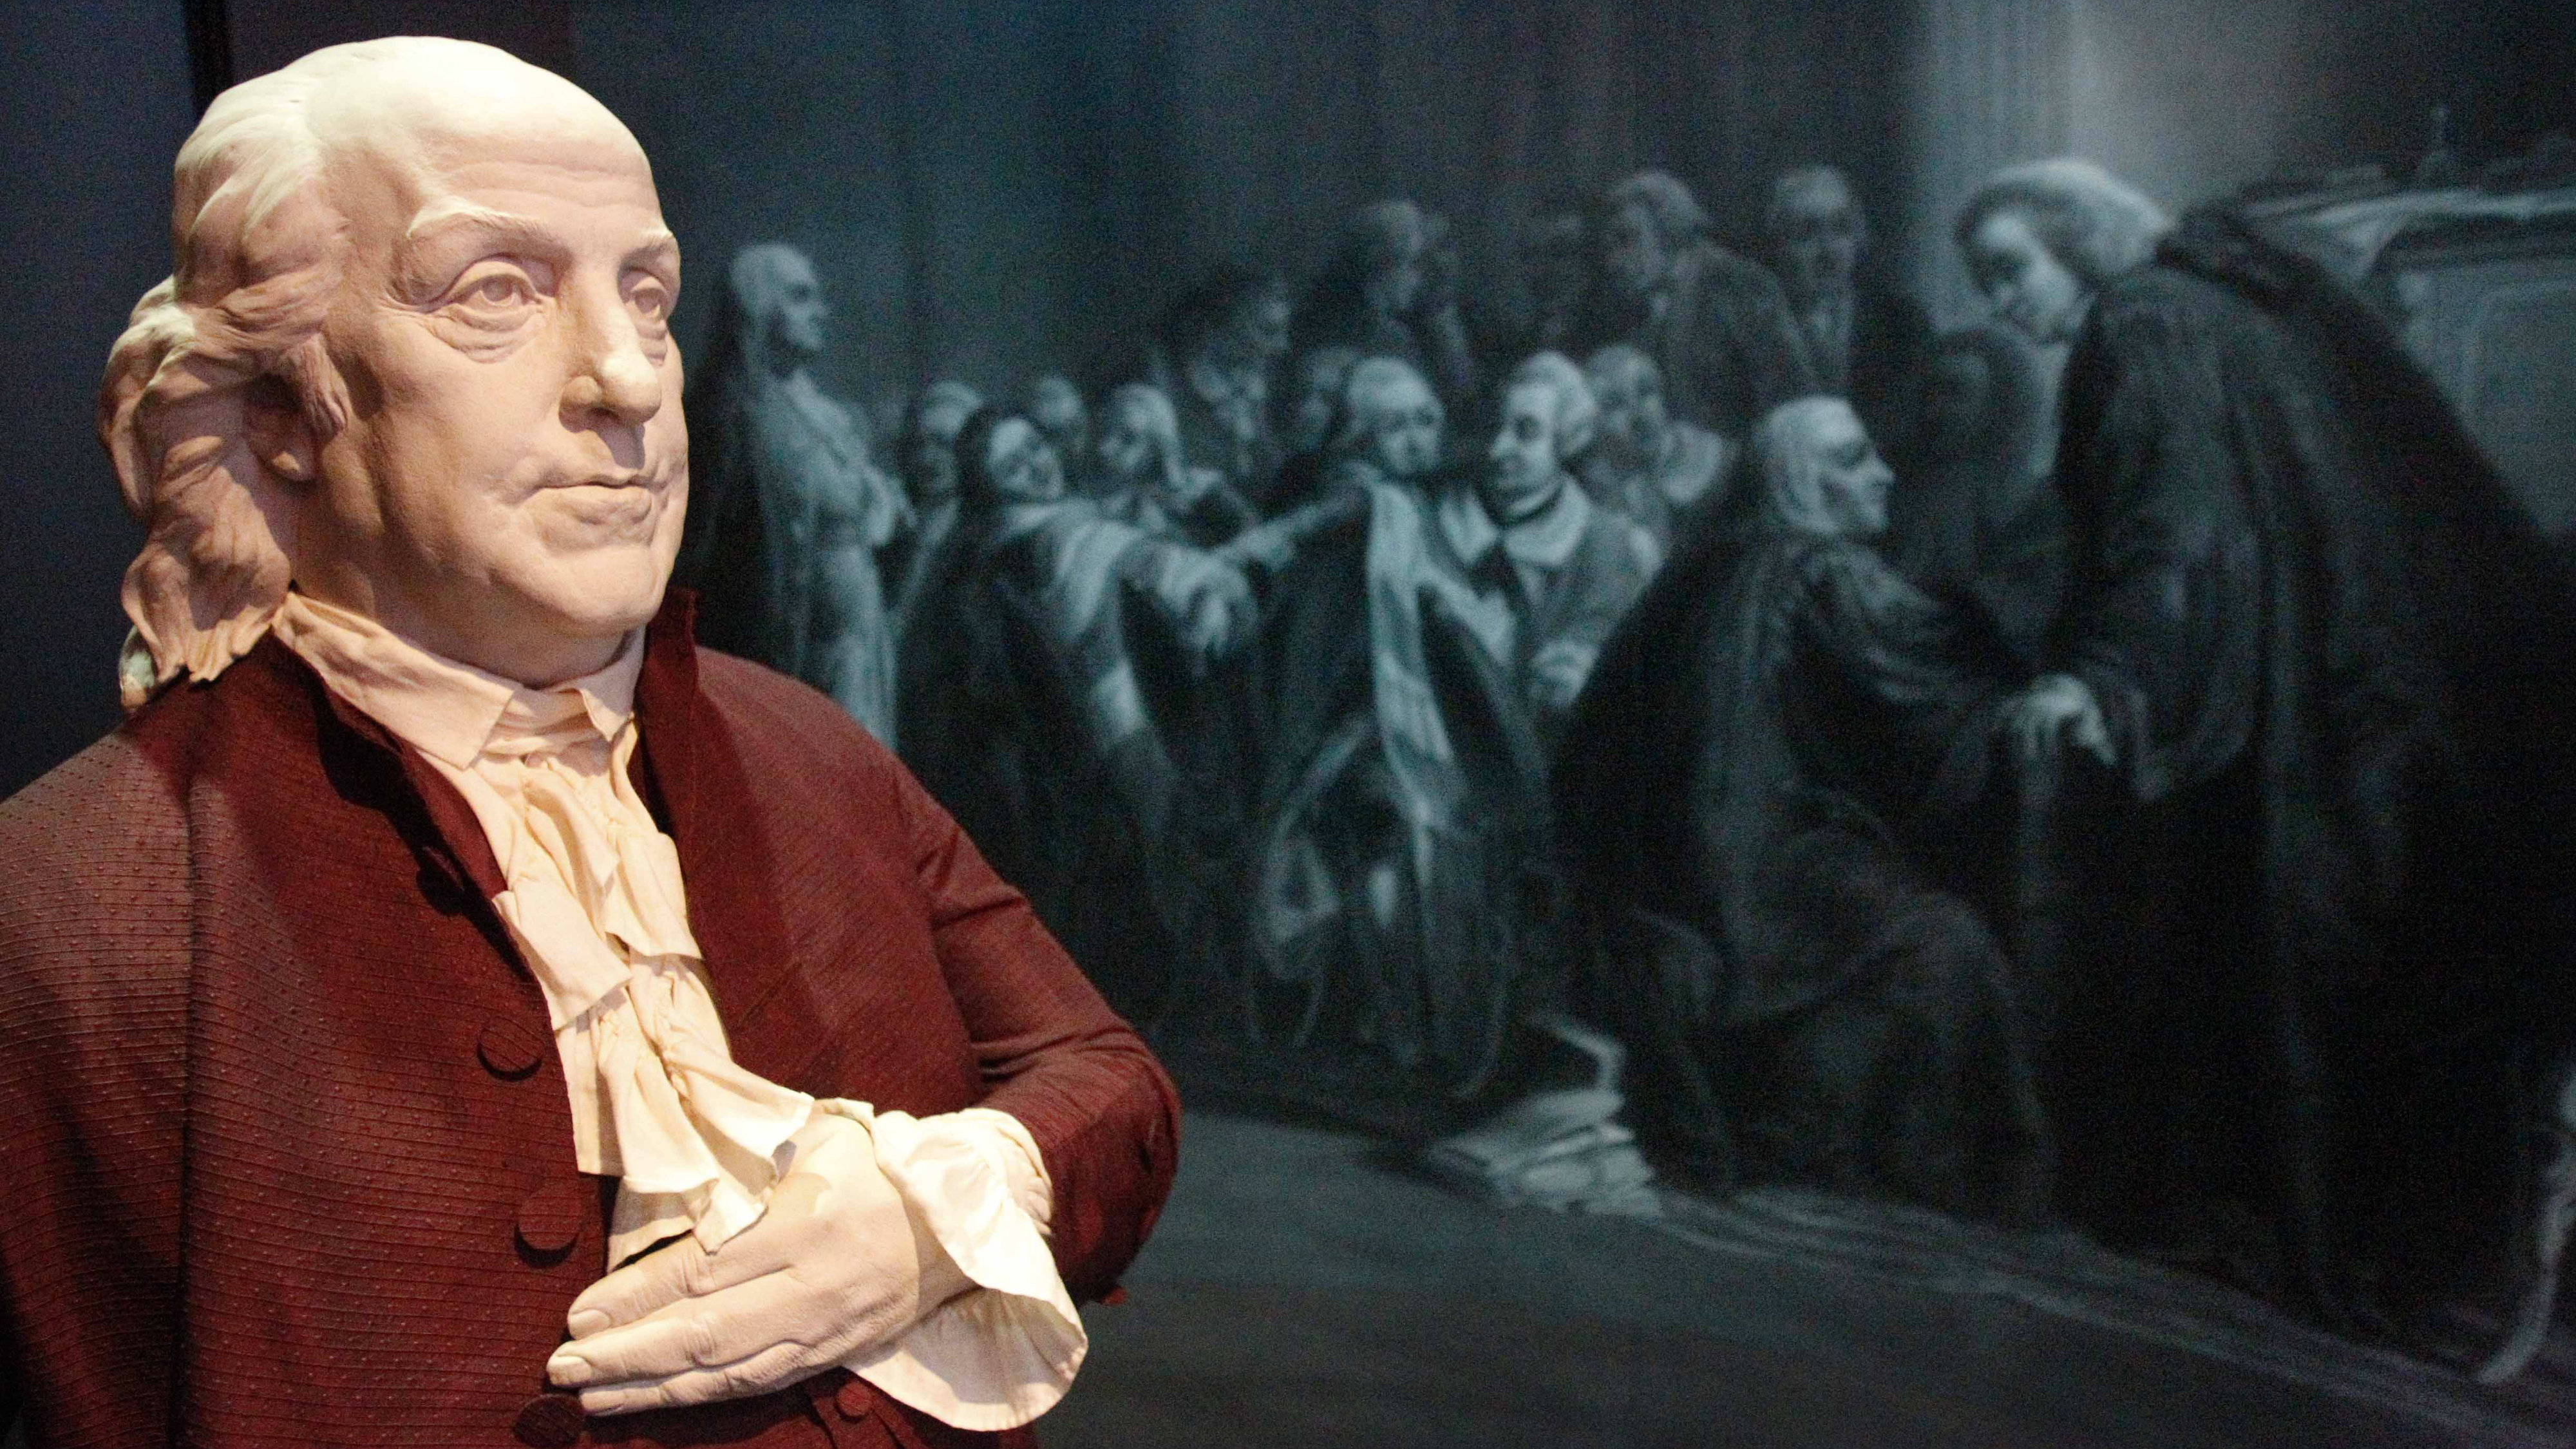 In this April 12, 2011 photo, a figure of Benjamin Franklin is seen before the opening of the traveling exhibit on Benjamin Franklin scheduled to run from April 16 through July 31, 2011 at the Senator John Heinz History Center in Pittsburgh. Franklin is shown in front of artwork representing his 1774 questioning in England where Lord Alexander Wedderburn accused Franklin of leaking letters to provoke colonial riots against the Crown. (AP Photo/Keith Srakocic)